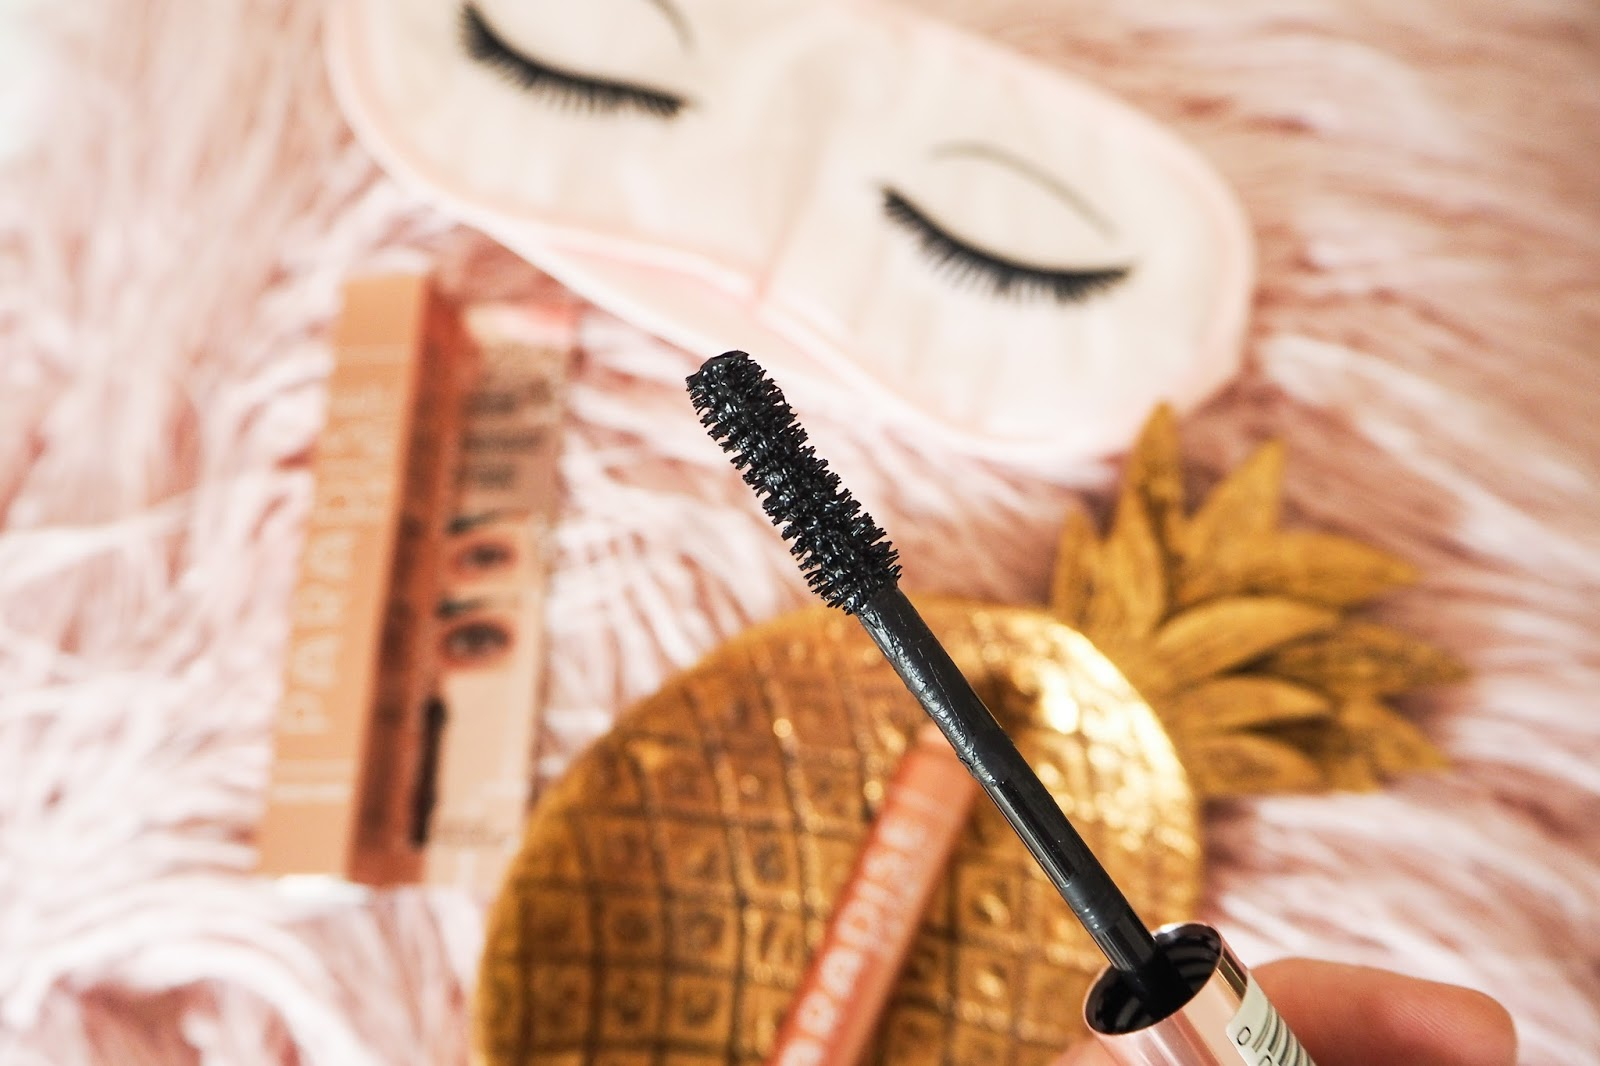 L'Oreal Paradise Mascara UK Version Brush/Wand